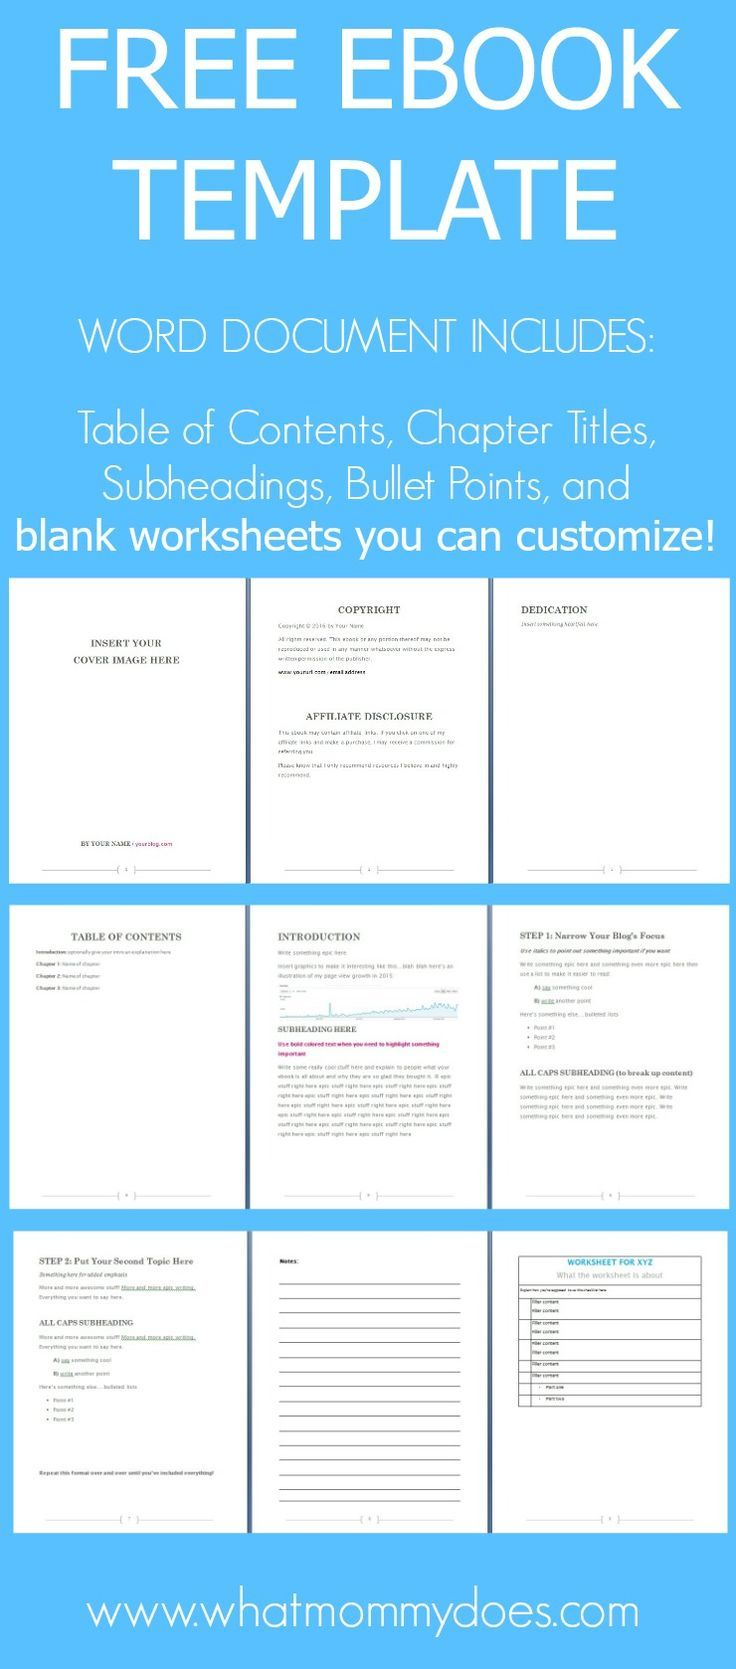 free ebook templates - best 25 paragraph generator ideas on pinterest